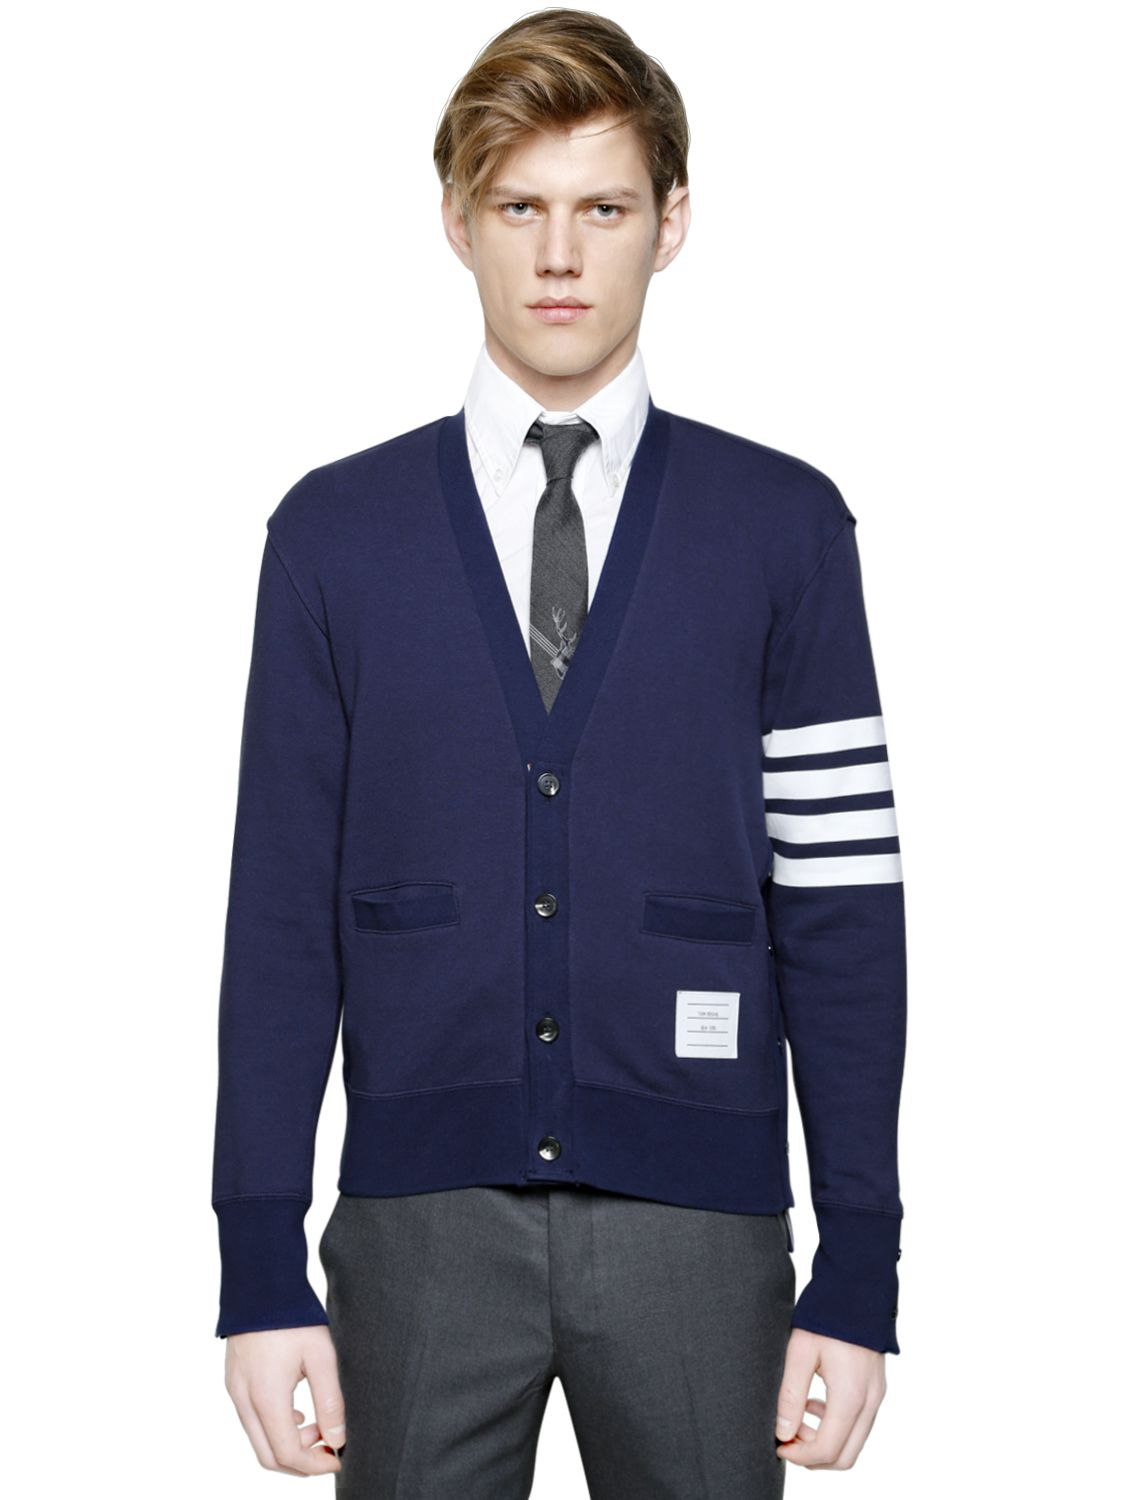 Thom browne Cardigan Style Cotton Sweatshirt in Blue for Men | Lyst